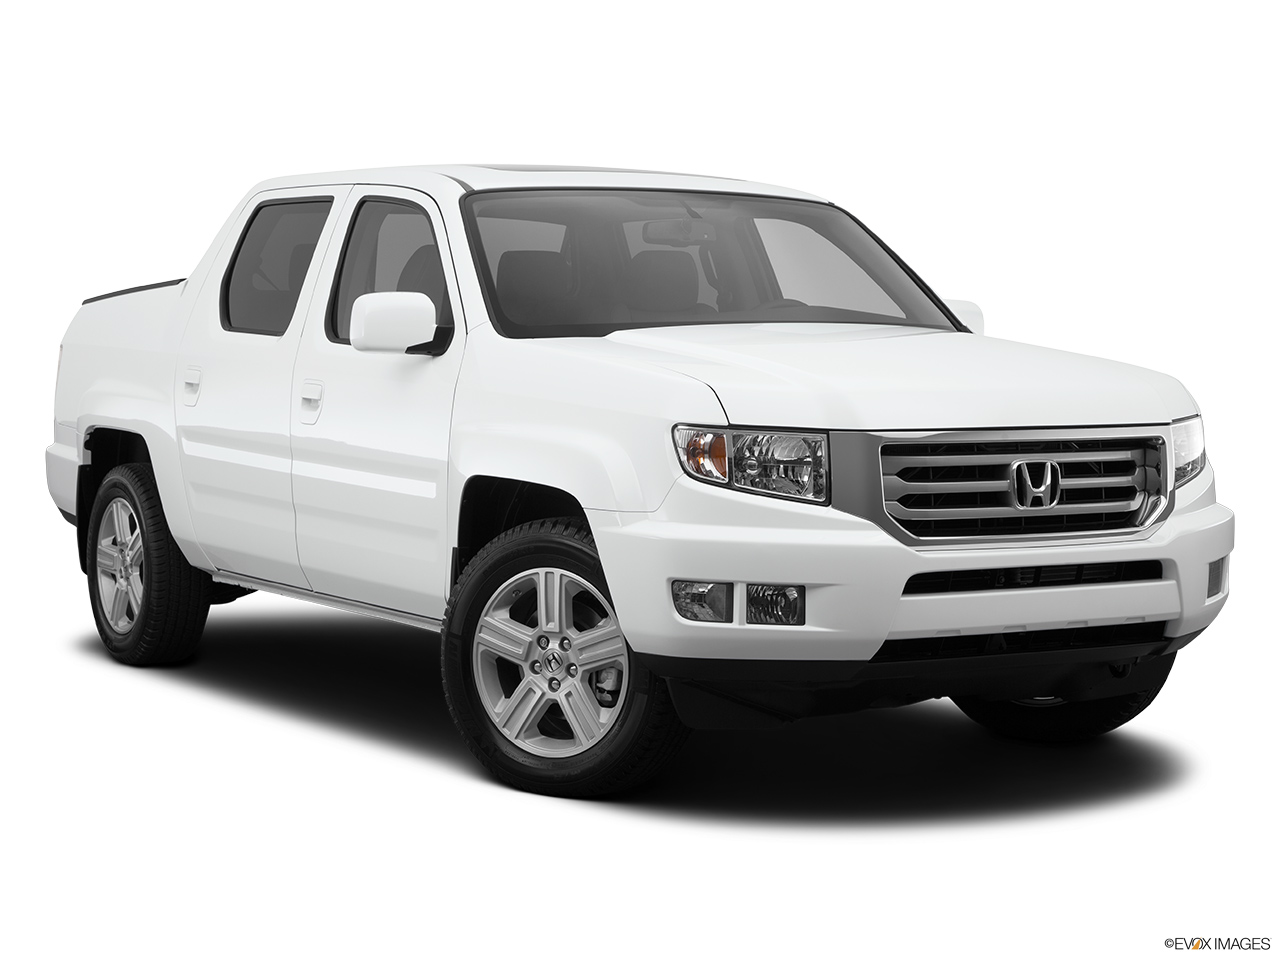 2014 honda ridgeline specs 4wd crew cab rt specifications holidays oo. Black Bedroom Furniture Sets. Home Design Ideas